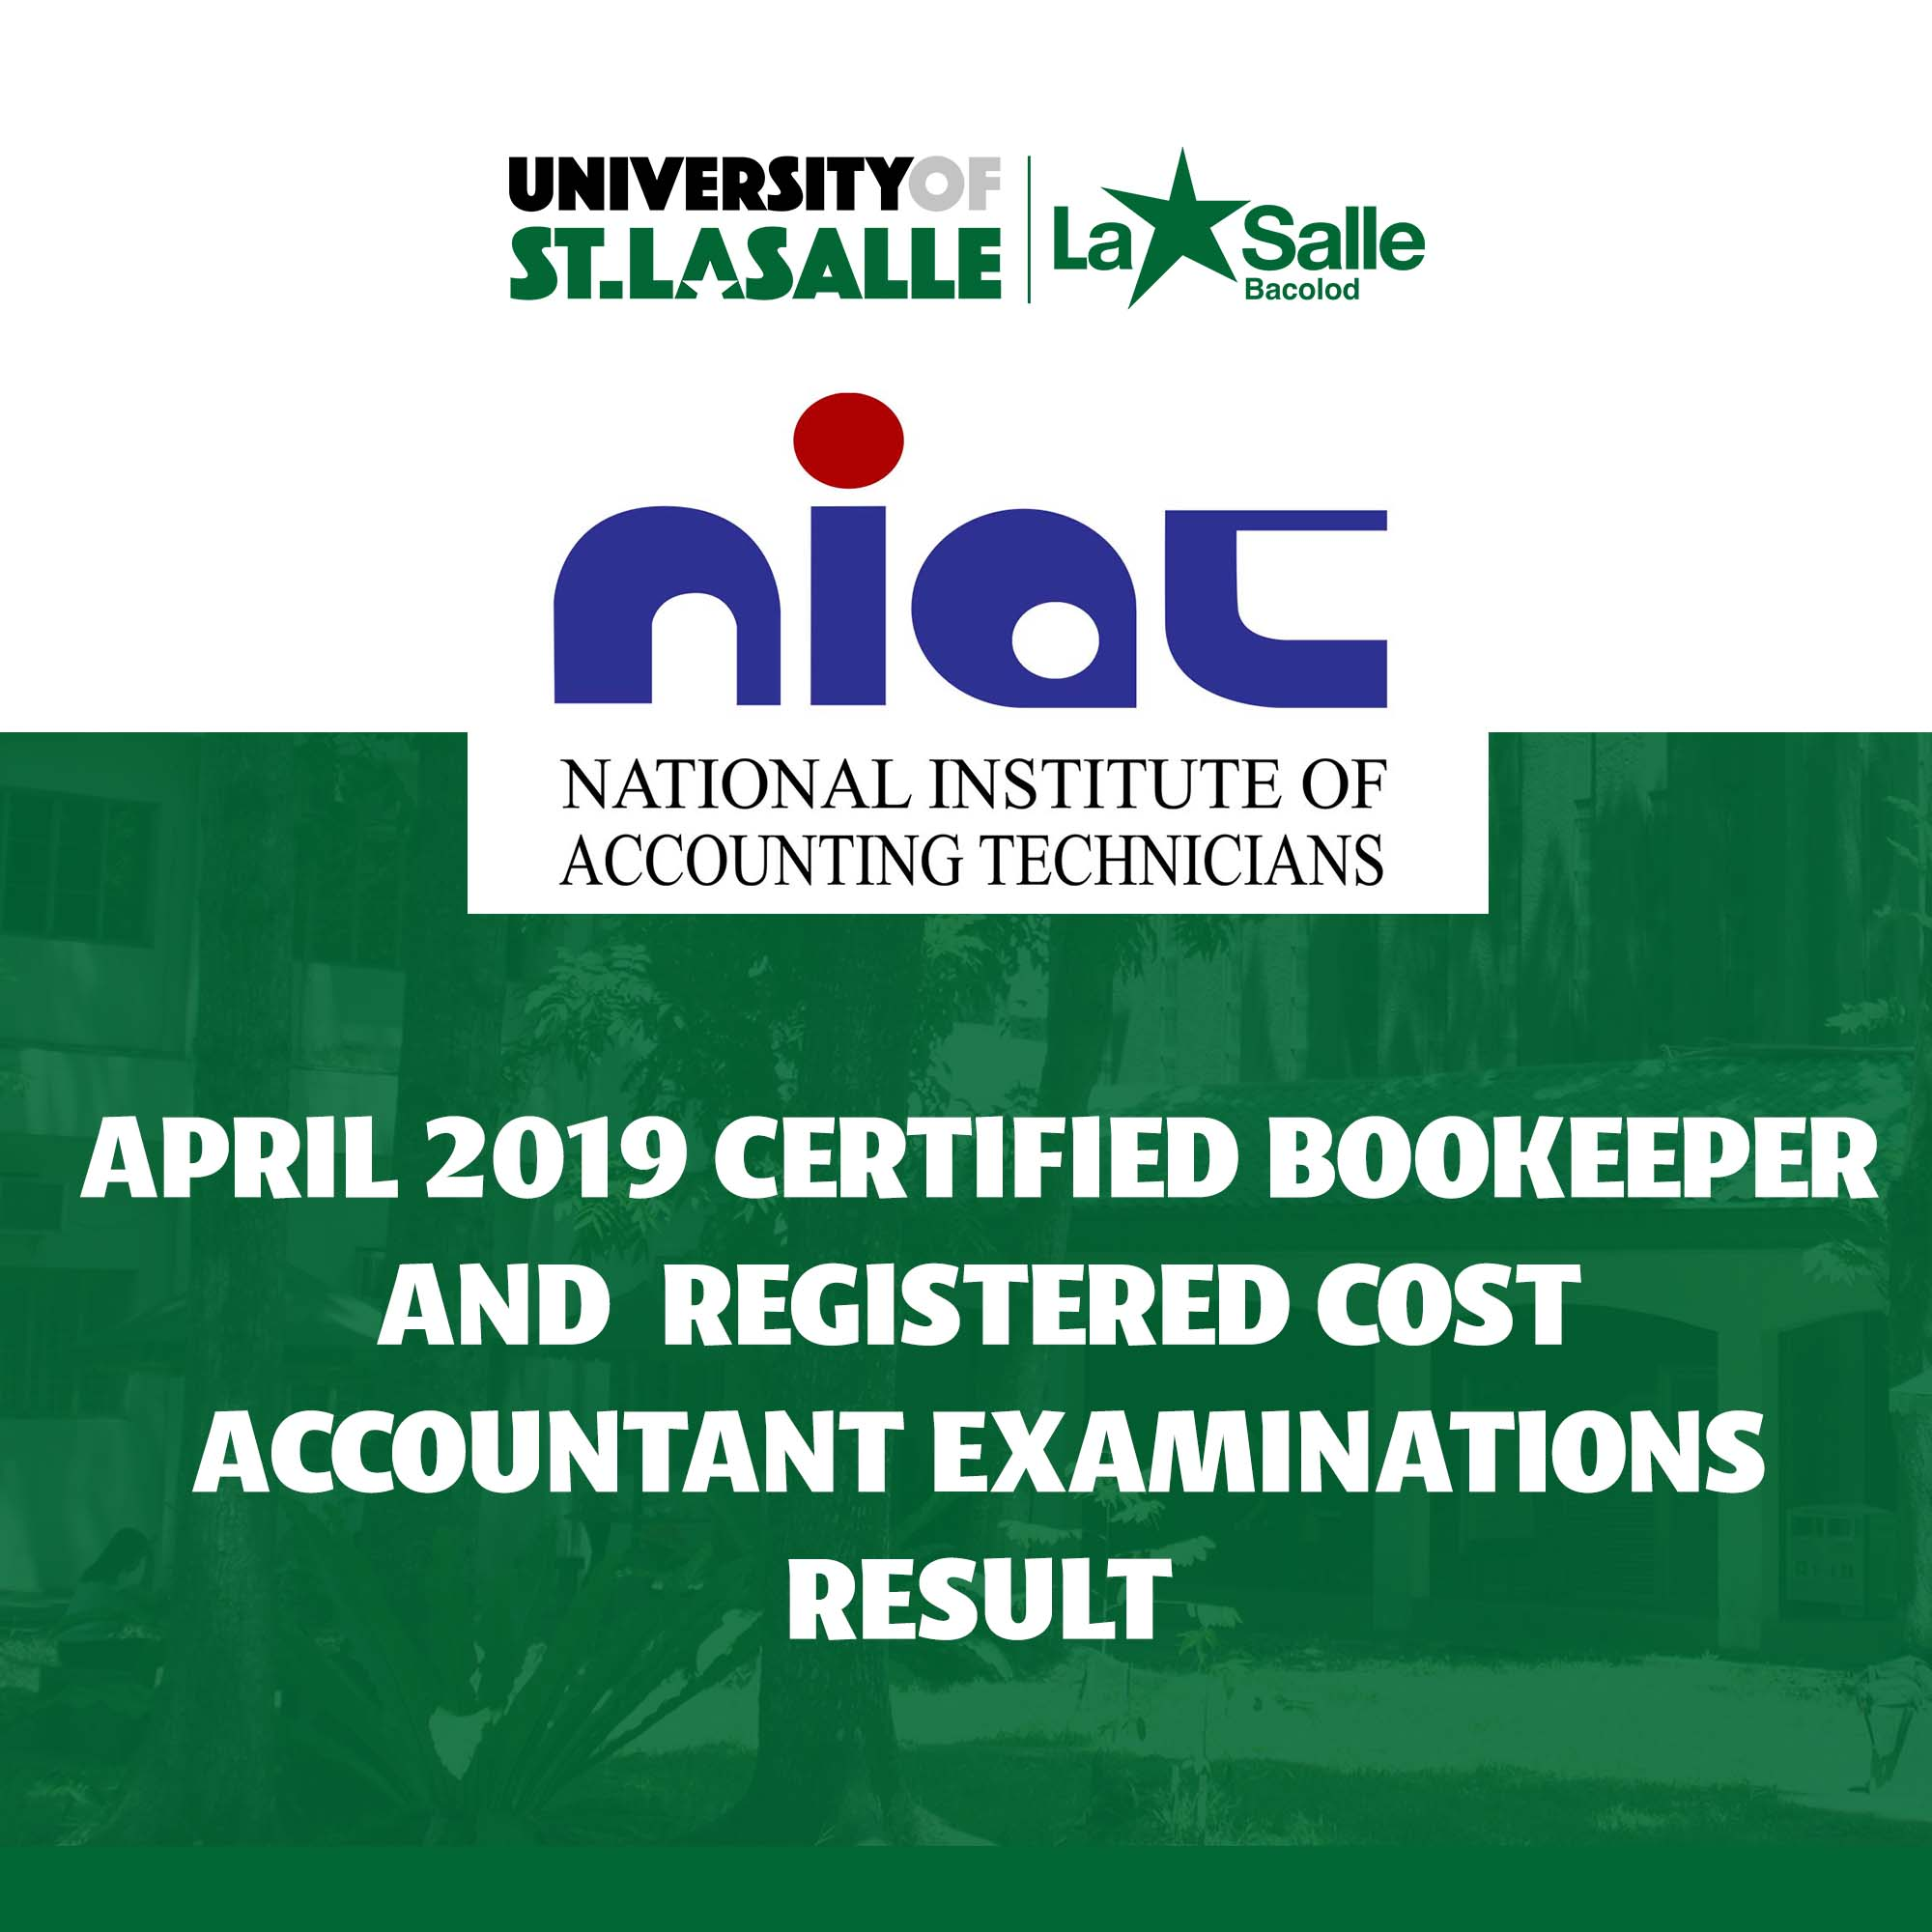 April-2019-Certified-Bookkeeper-And-Registered-Cost-Accountant-Examinations-Results.jpg